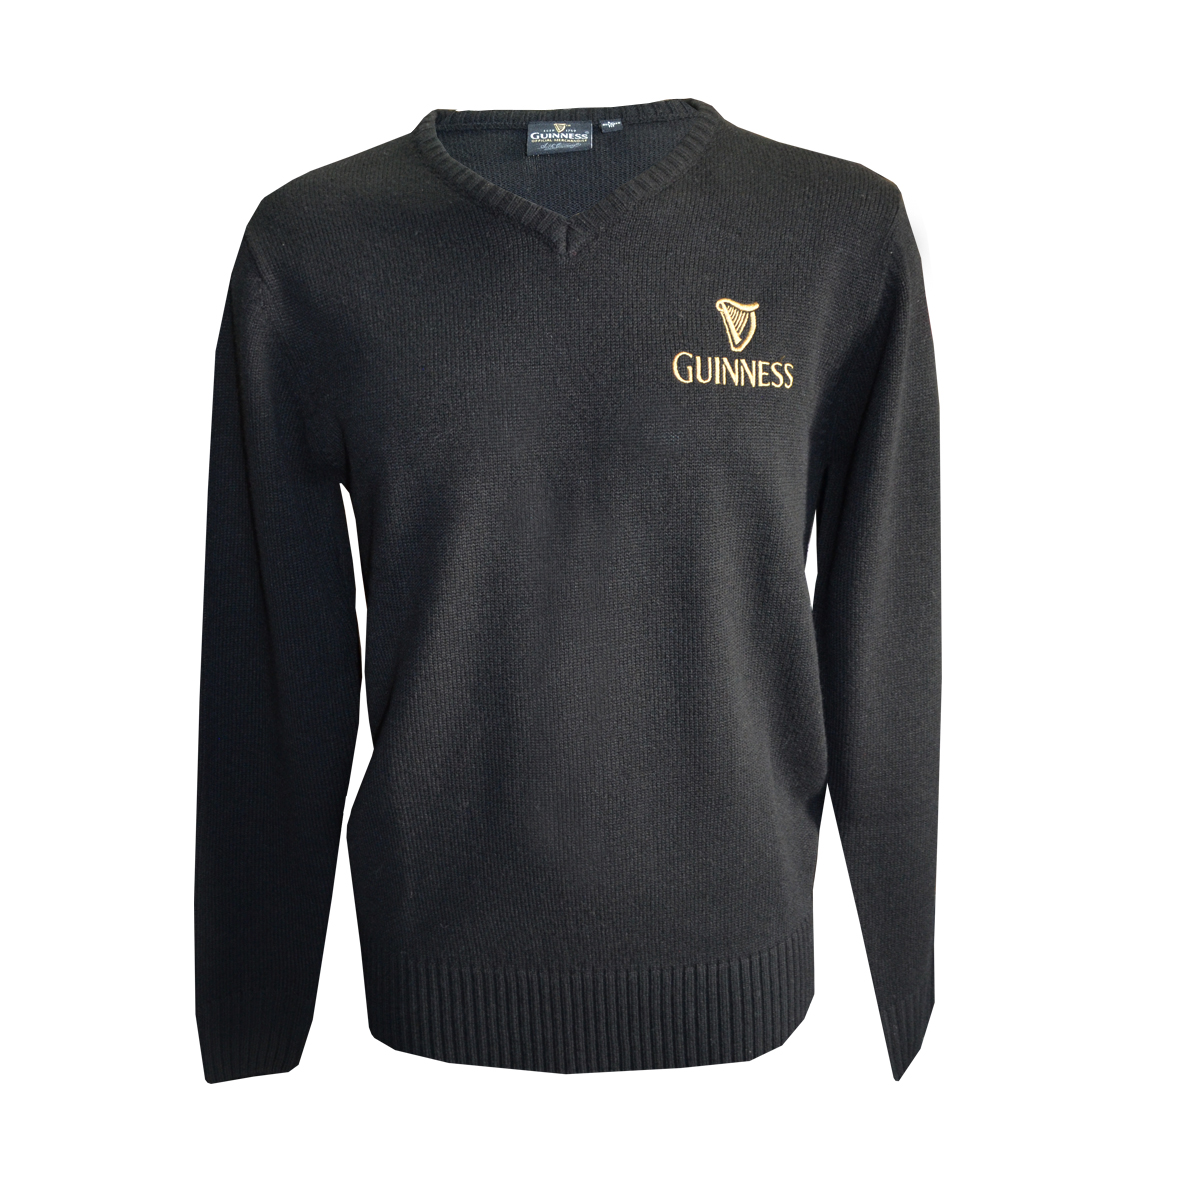 Guinness Black V Neck Gold Harp Emblem Sweater (S-XXL)